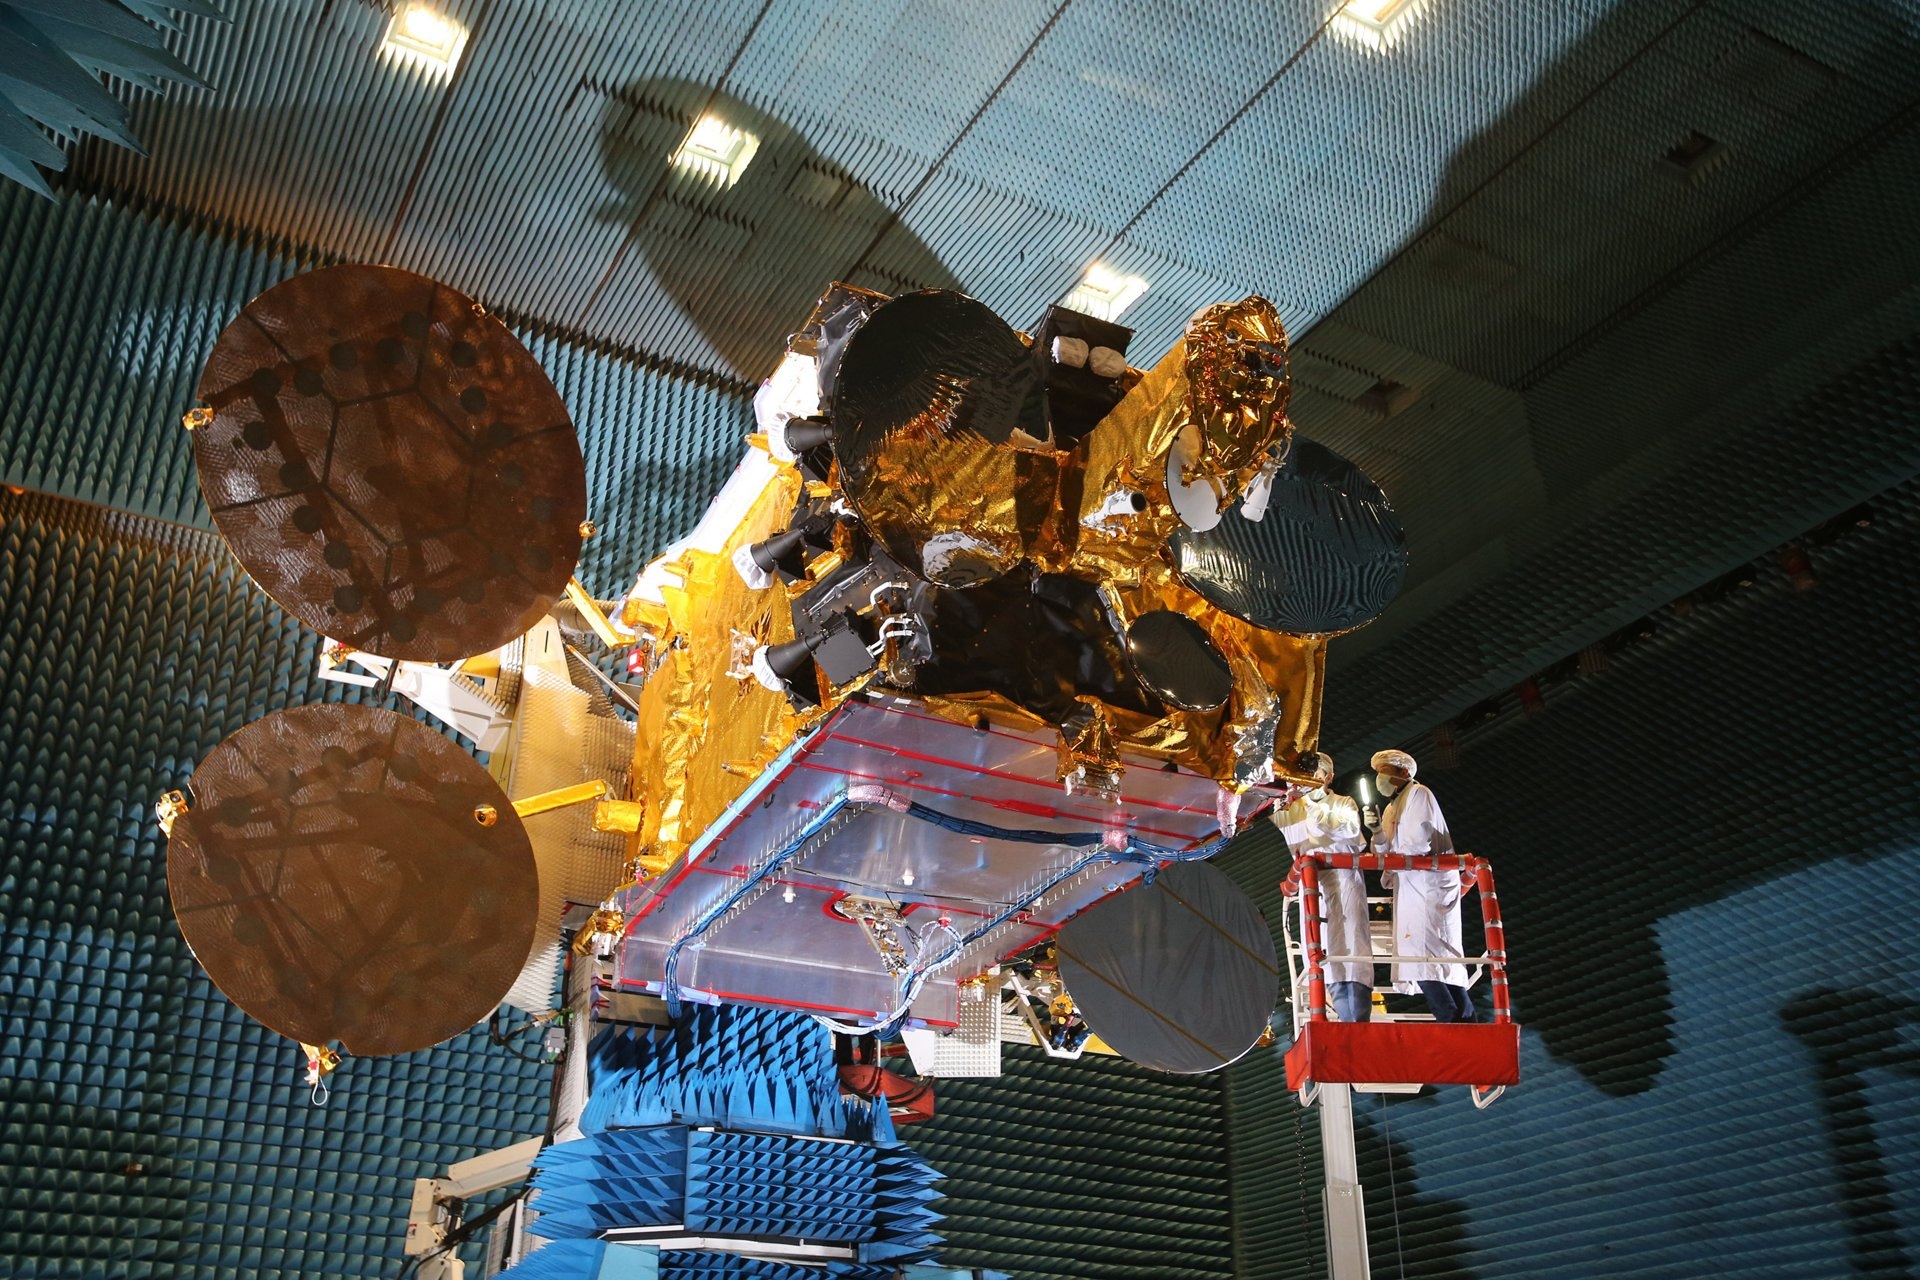 Arabsat 6B, the Seventh Eurostar satellite from Airbus Defence and Space to the Arab Satellite Communications Organisation, in Airbus facilities in Toulouse